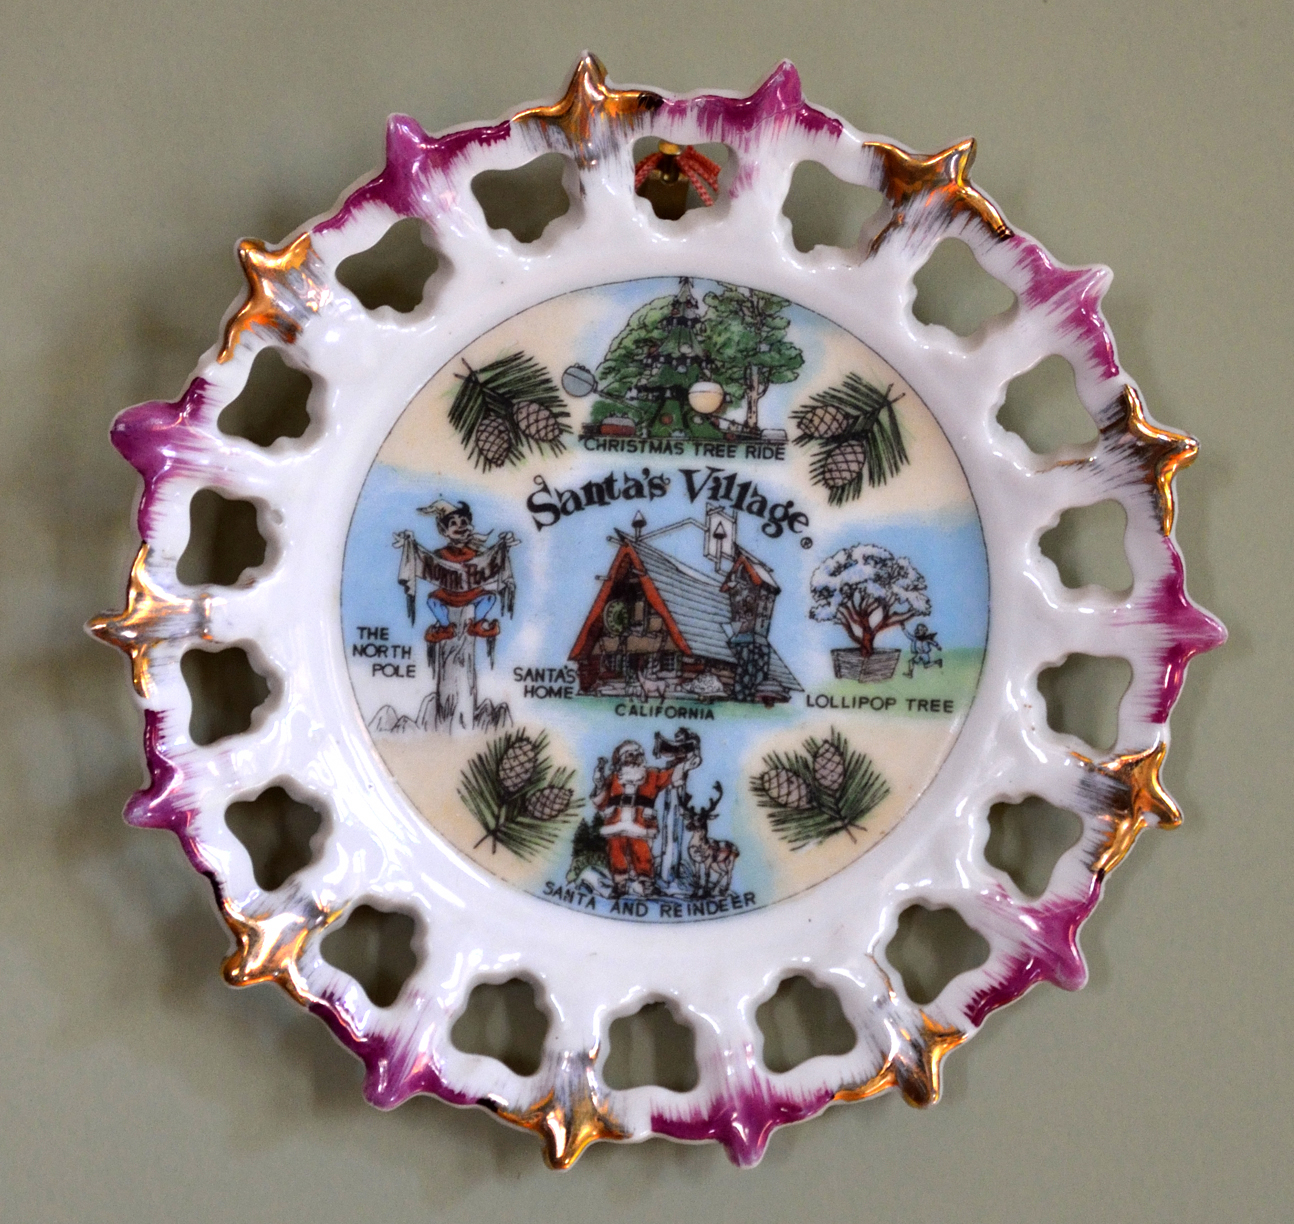 Santa's Village collector's plate - Skyforest, California U.S.A. - ca. 1960's